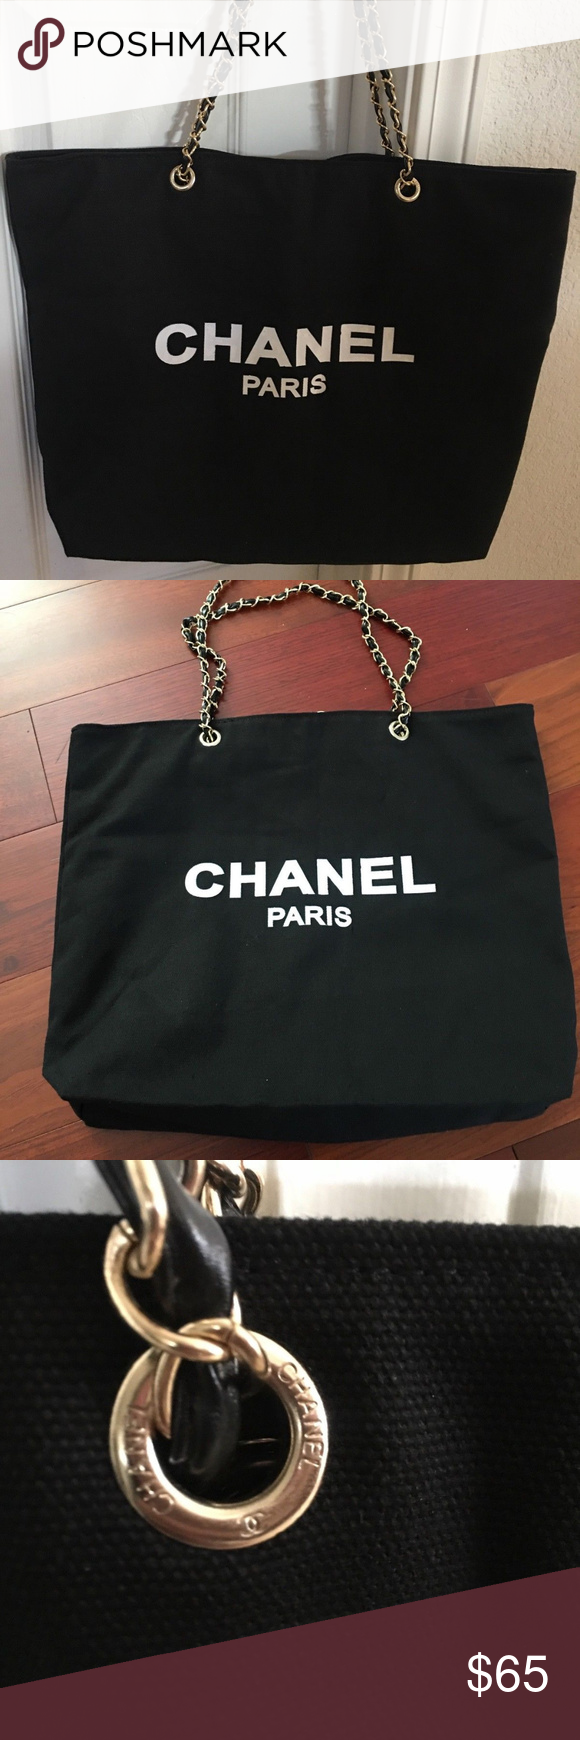 14236559a550 Chanel vip Gift bag canvas tote bag gold chain Authentic Brand new Chanel  VIP Black Canvas